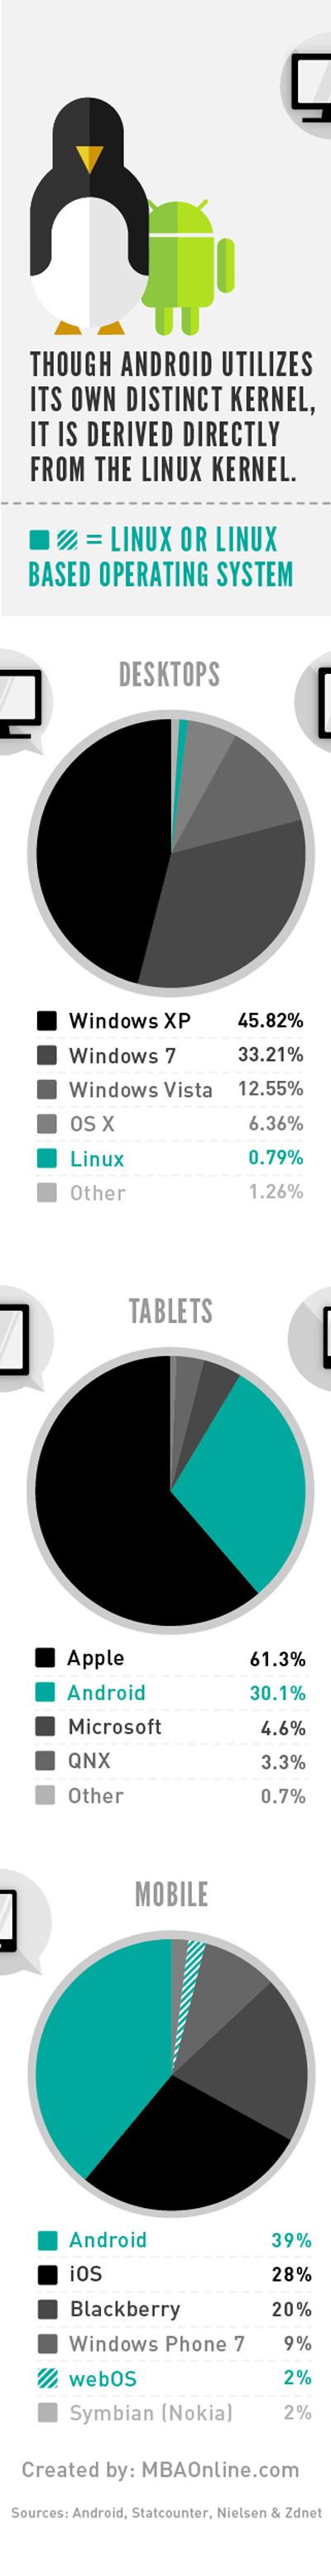 Operating Systems by Market Share Infographic